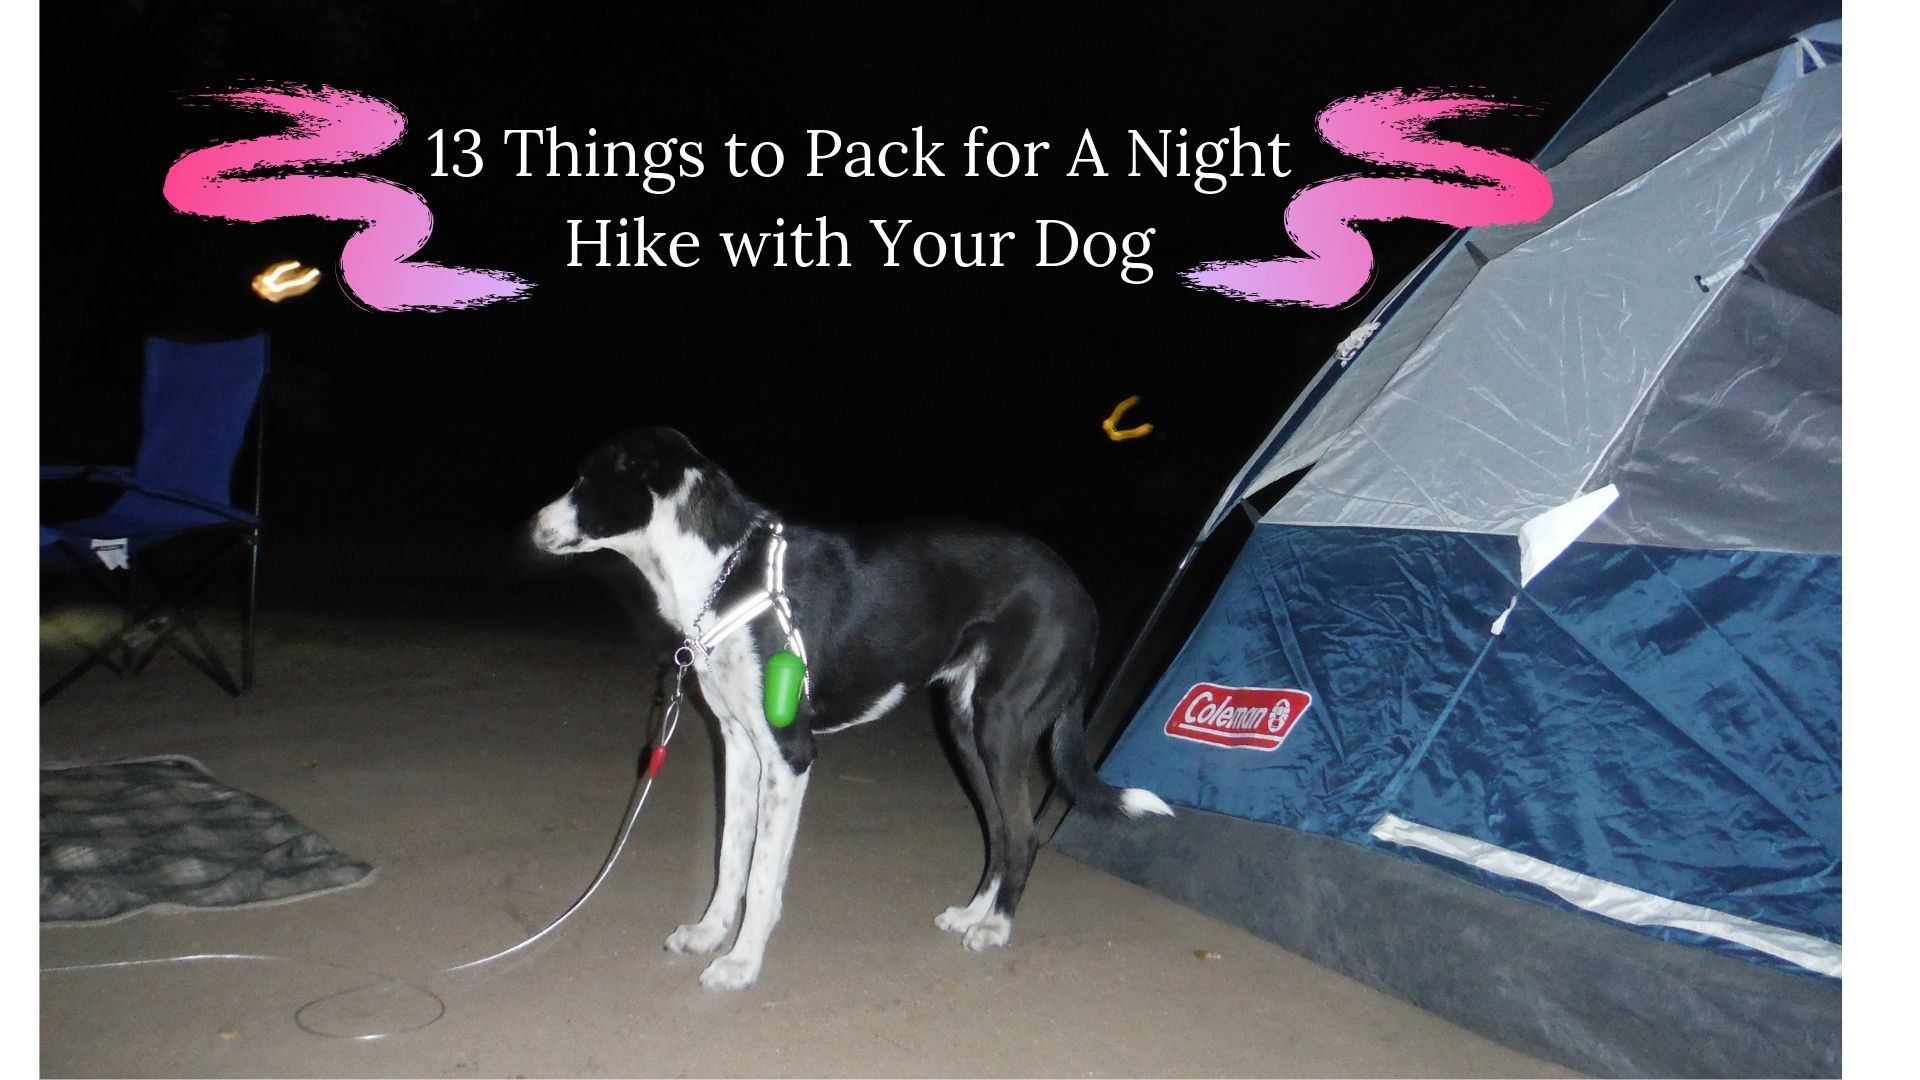 a night hike with your dog